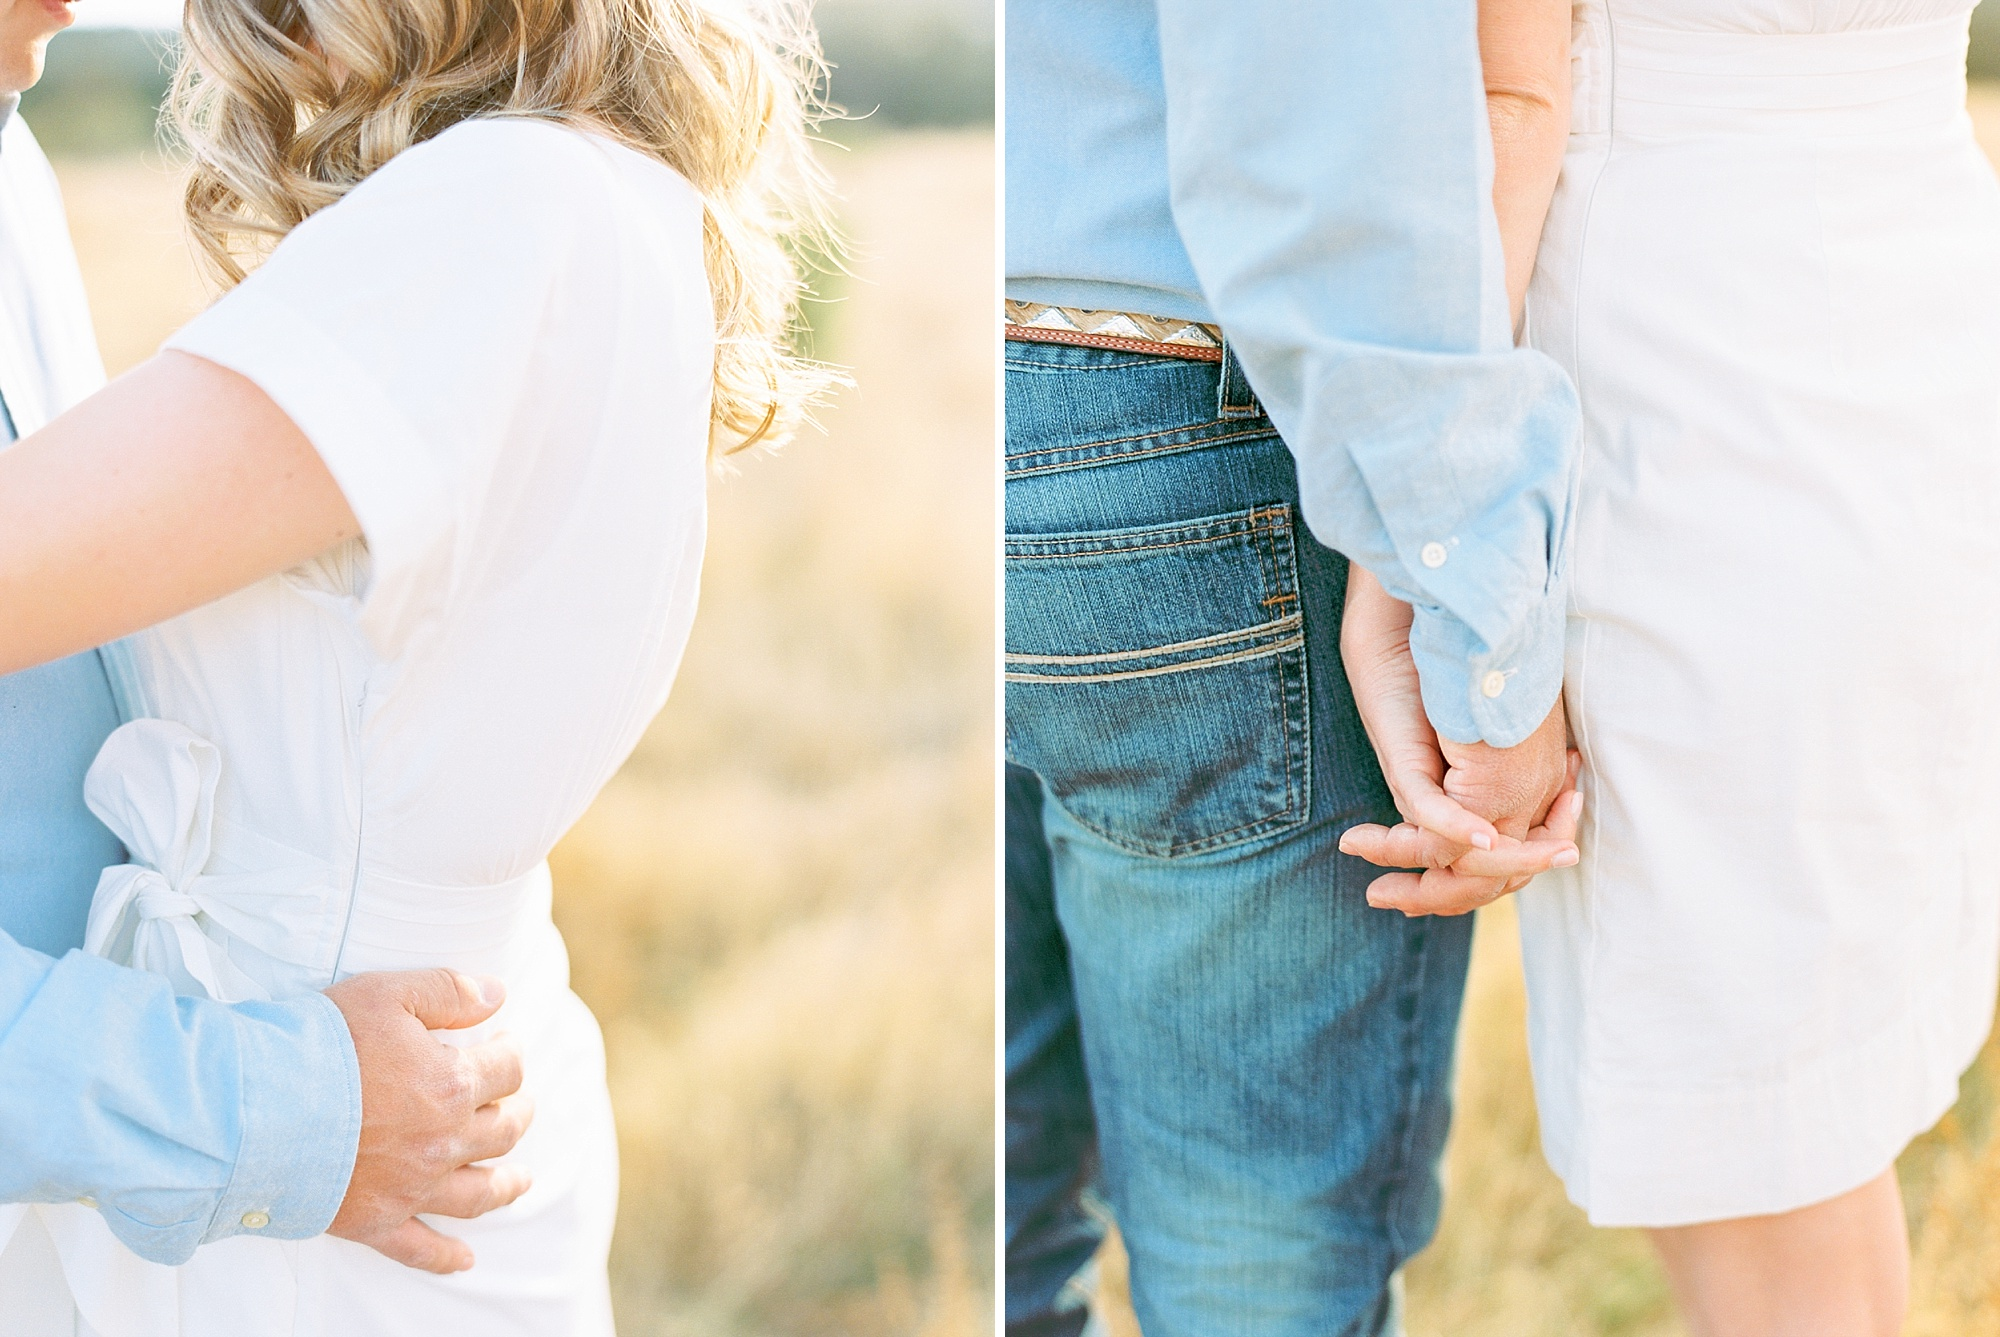 Golden Hills Engagement Session - Film Engagement Session - Ashley Baumgartner - Sacramento Wedding Photography - Stone Barn Ranch Wedding Couple_0004.jpg